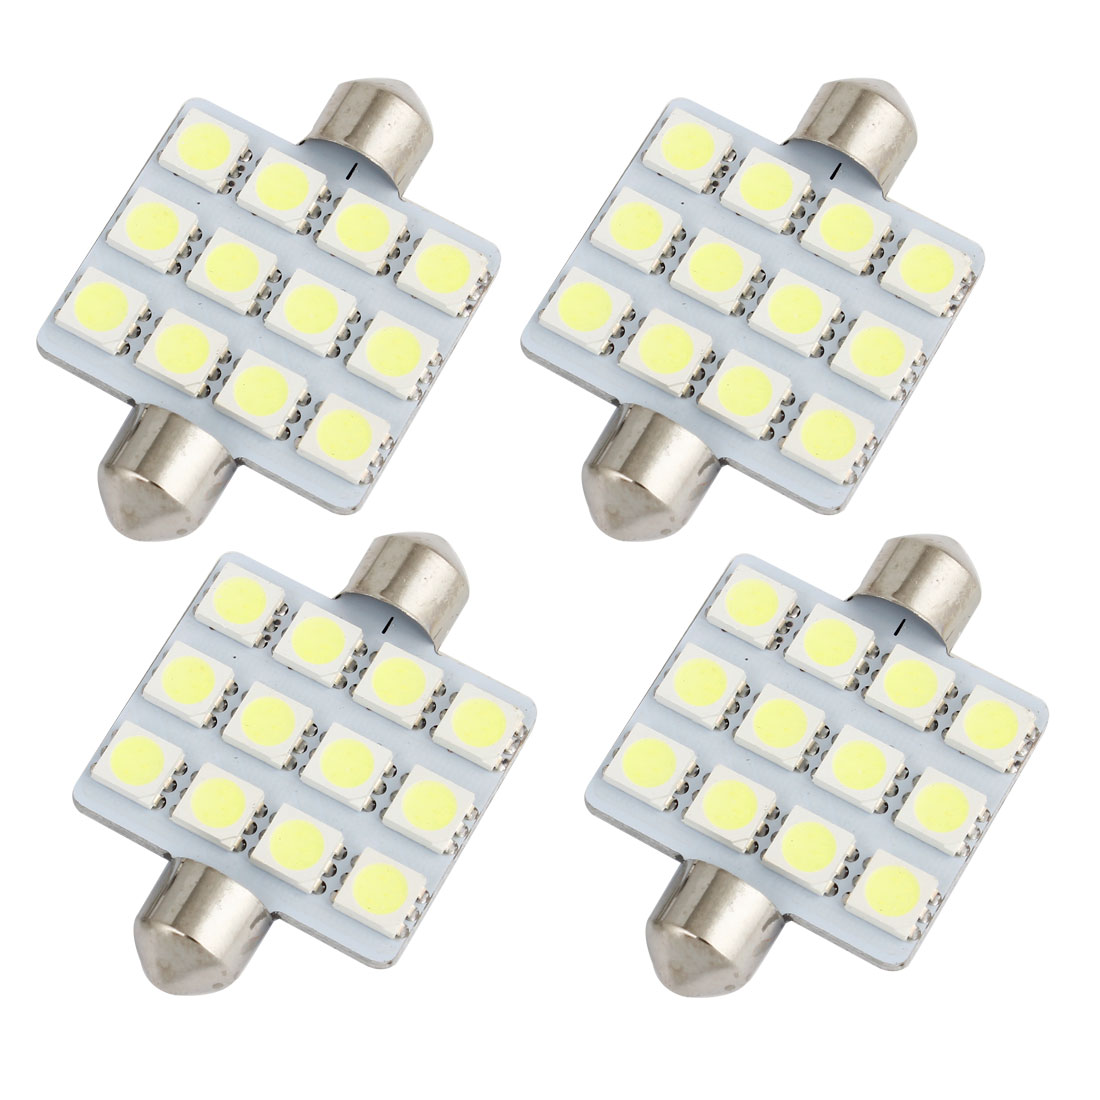 4pcs 41mm 5050 SMD 12-LED Festoon Dome Light White 6413 211-2 212-2 560 Internal